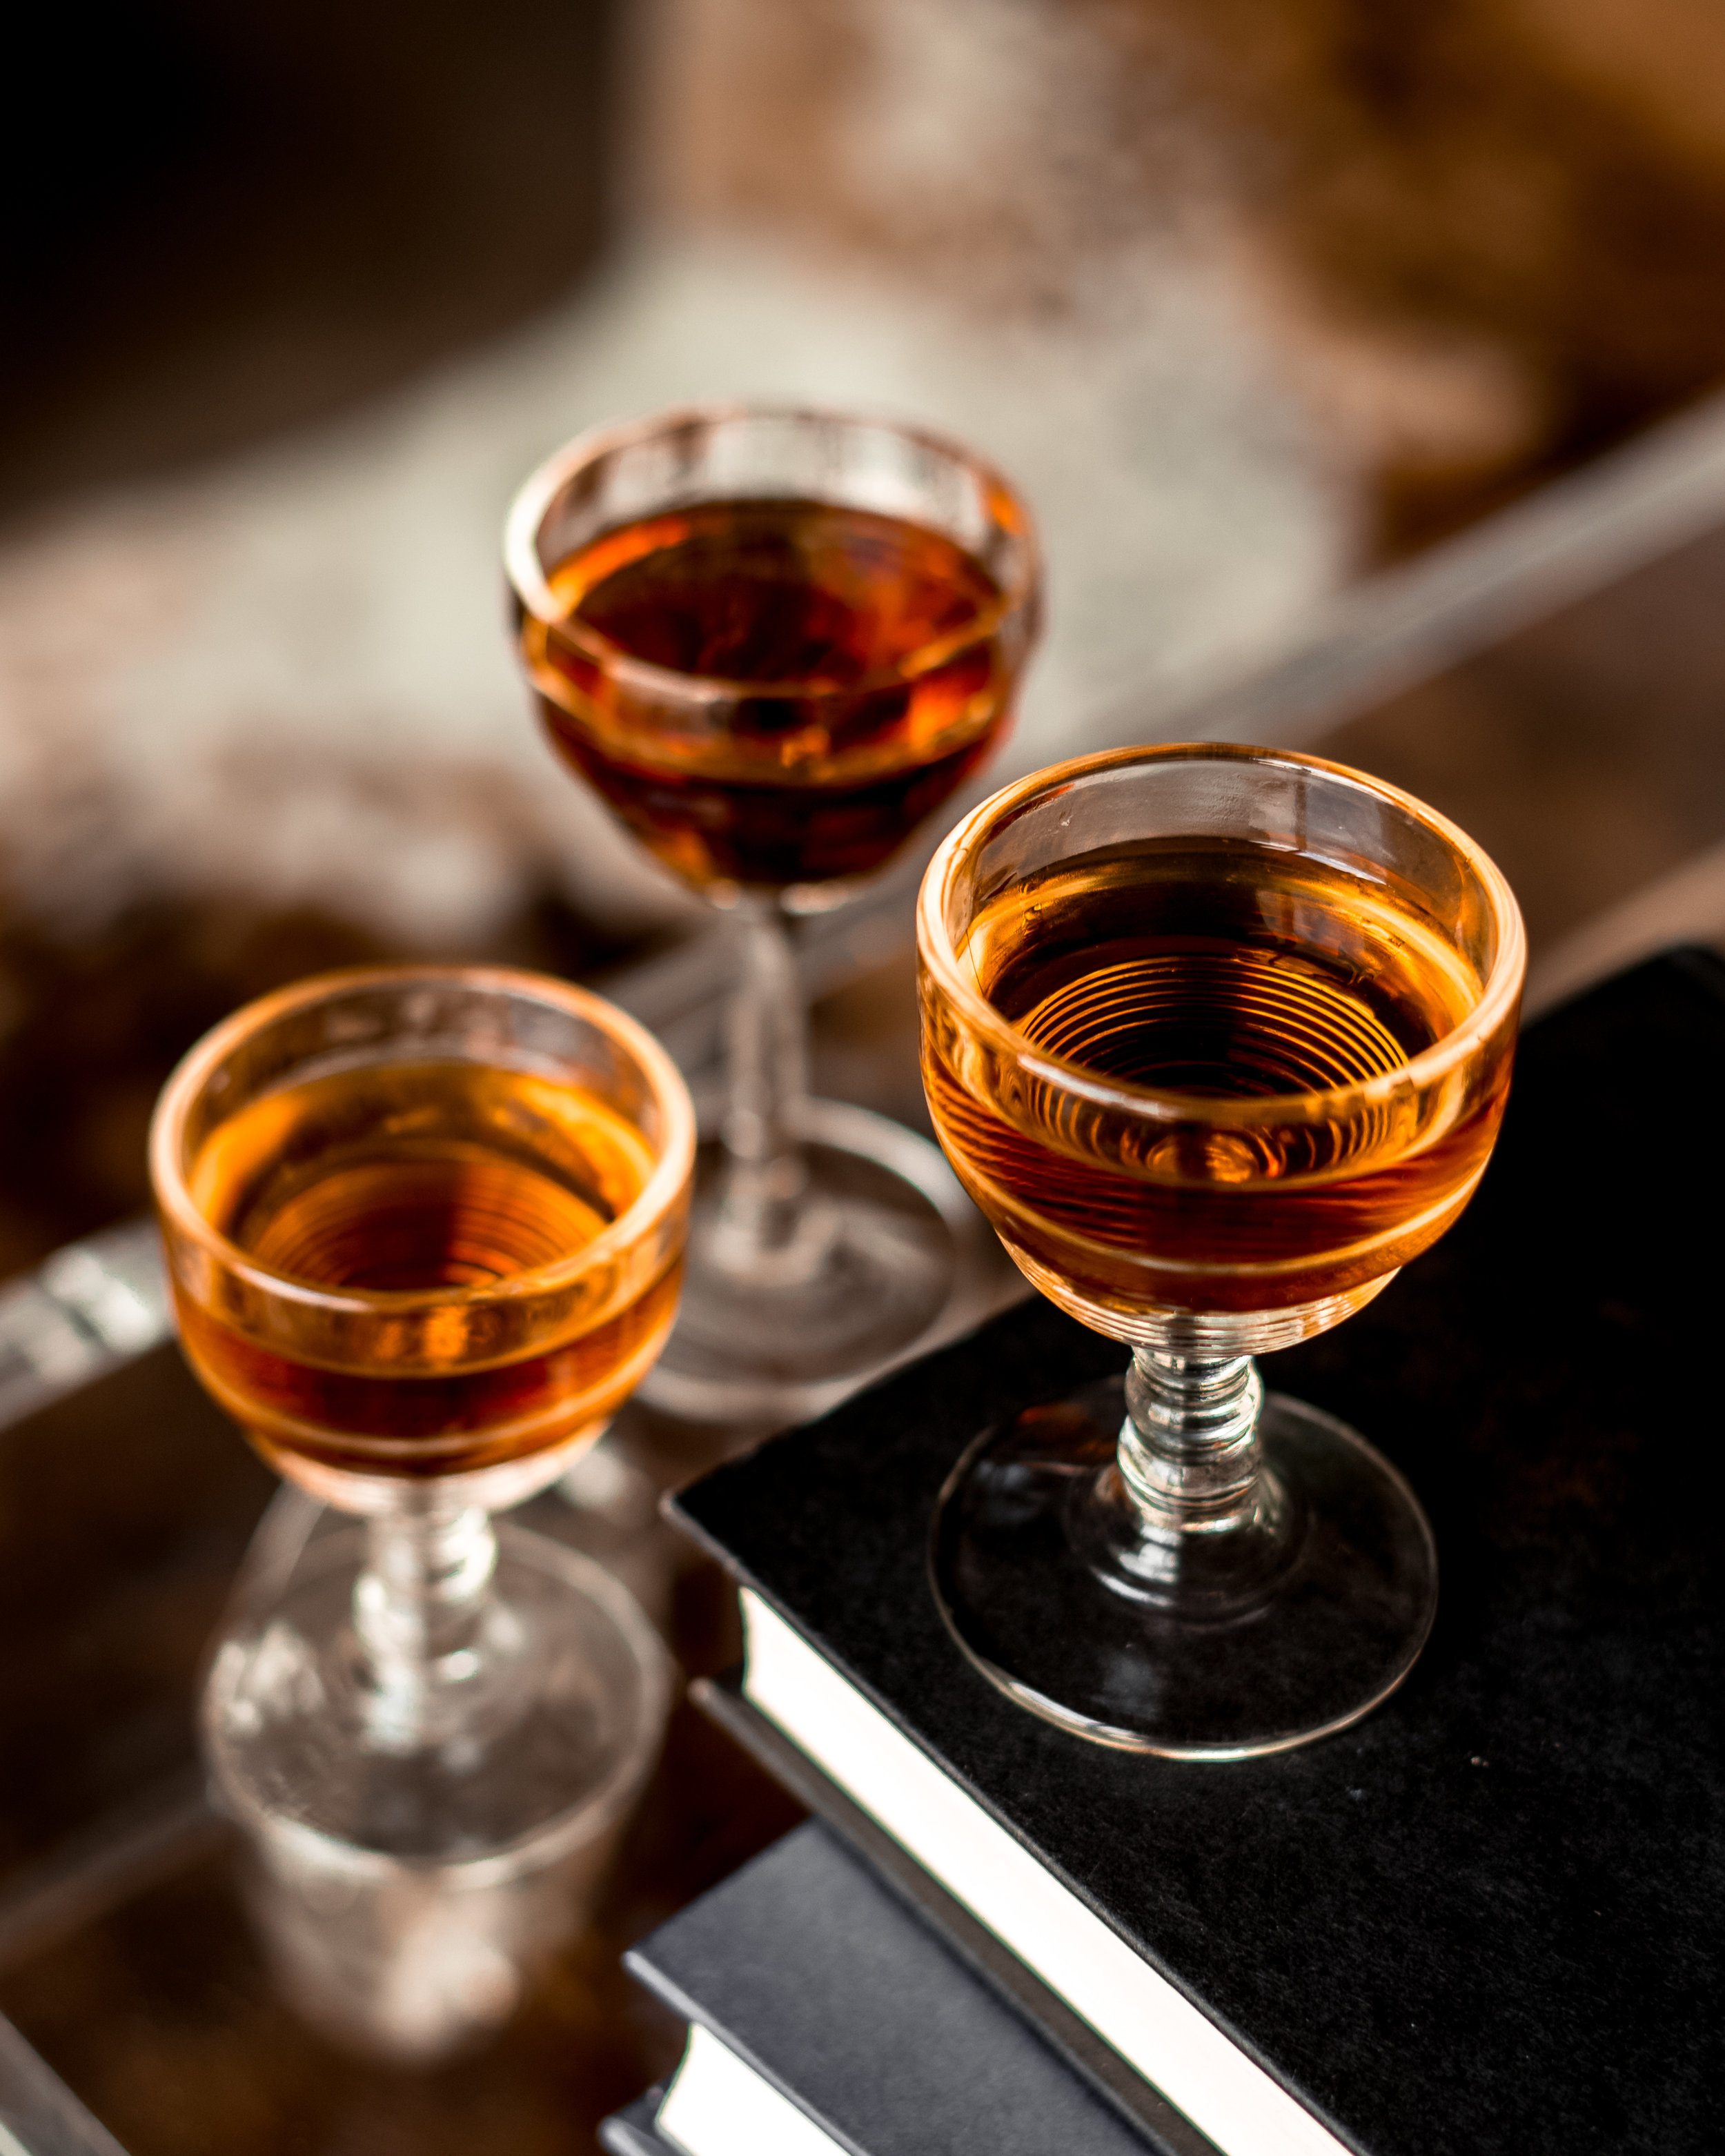 The 50 / 50 - 1 oz Hardy Cognac1 oz Amaro Dente di Leone (a wild dandelion-based liqueur)Directions: You simply combine the ingredients together in a shot glass, sip or shoot!